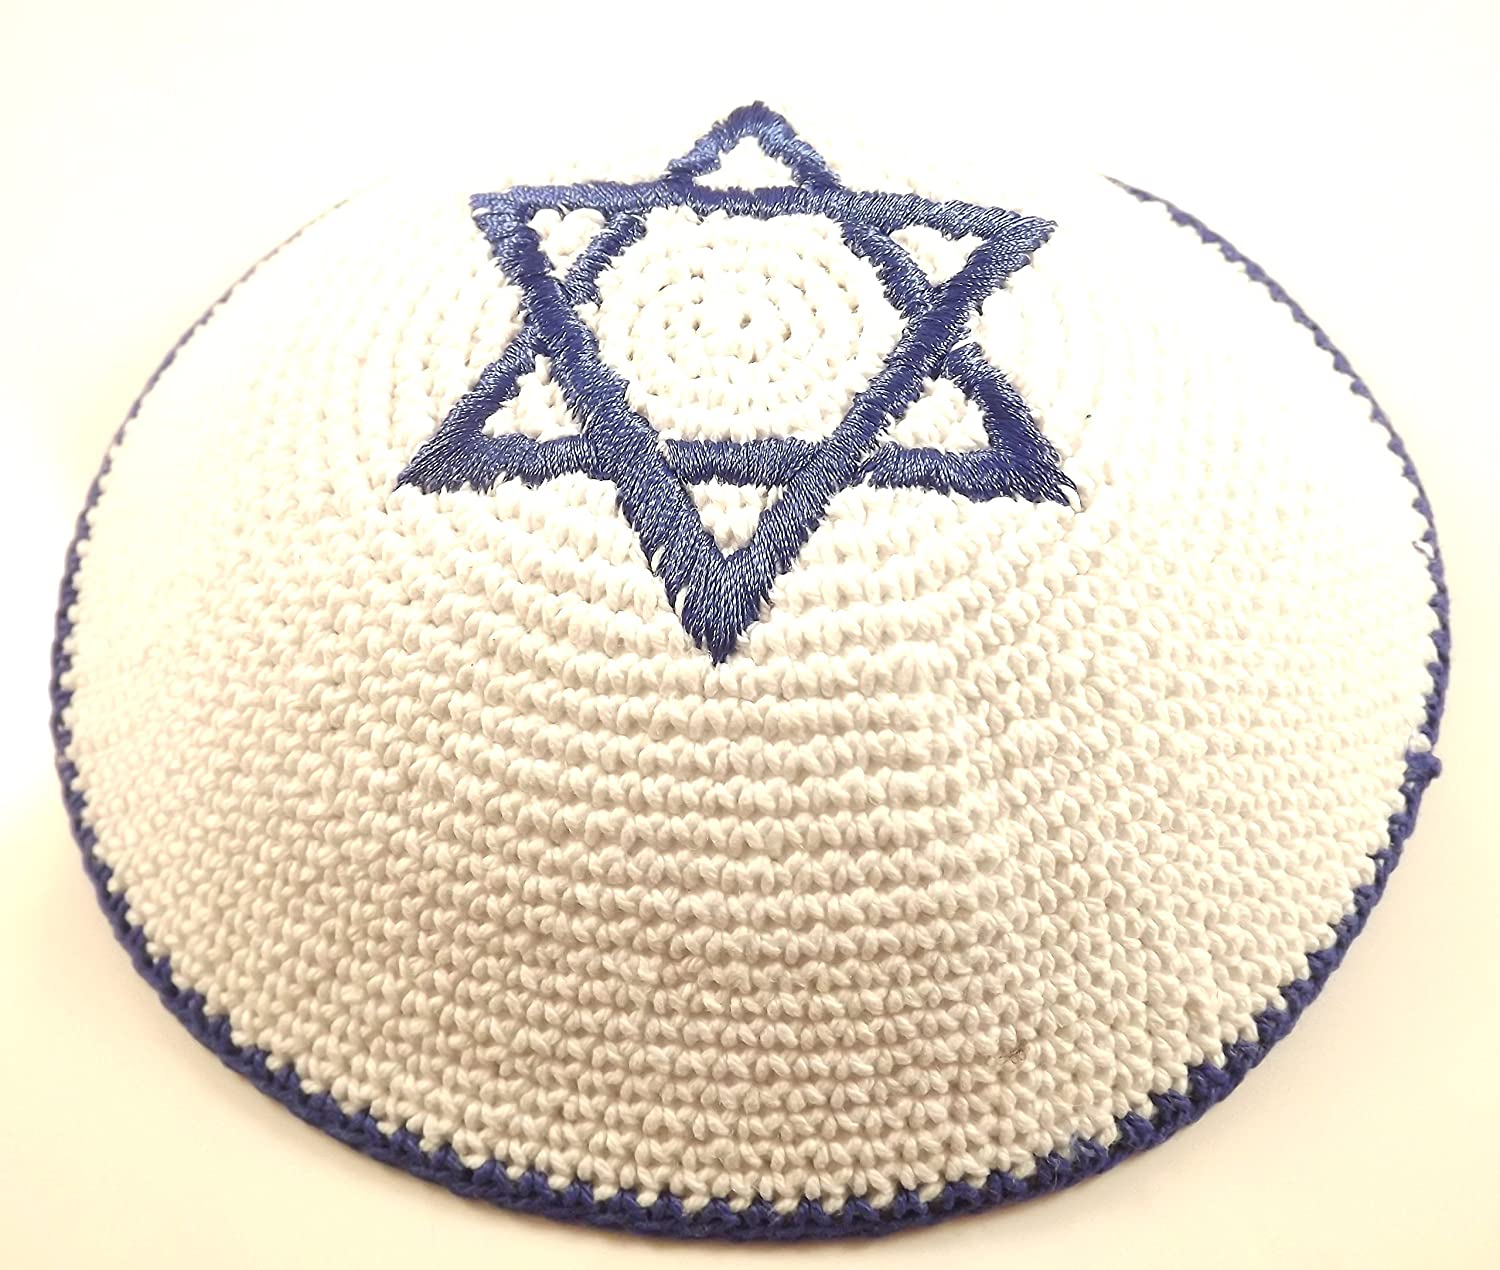 Amazon.com : High Quality Knitted Star of David Yarmulke Kippah 16 ...